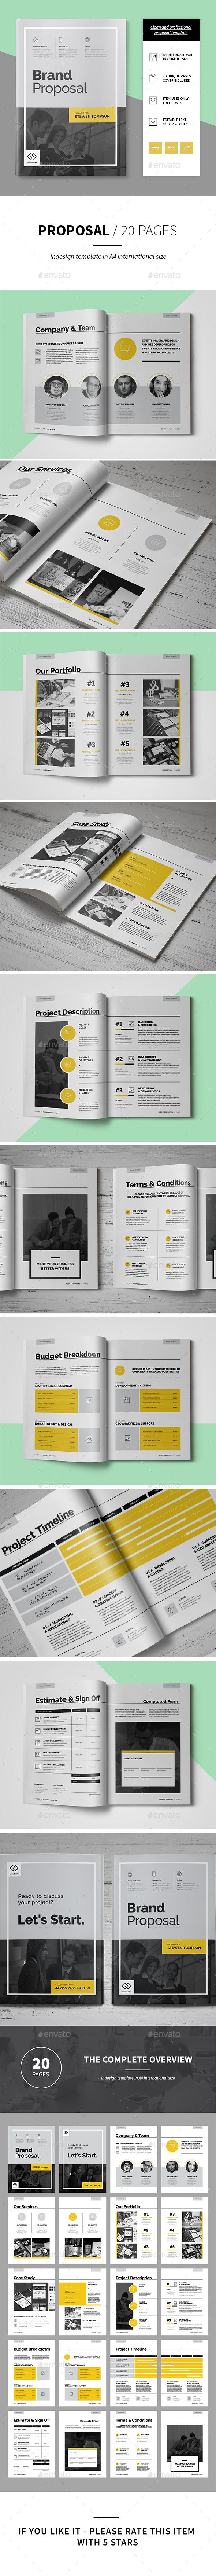 Proposal Template InDesign INDD. Download here: https://graphicriver.net/item/proposal/16991706?ref=ksioks